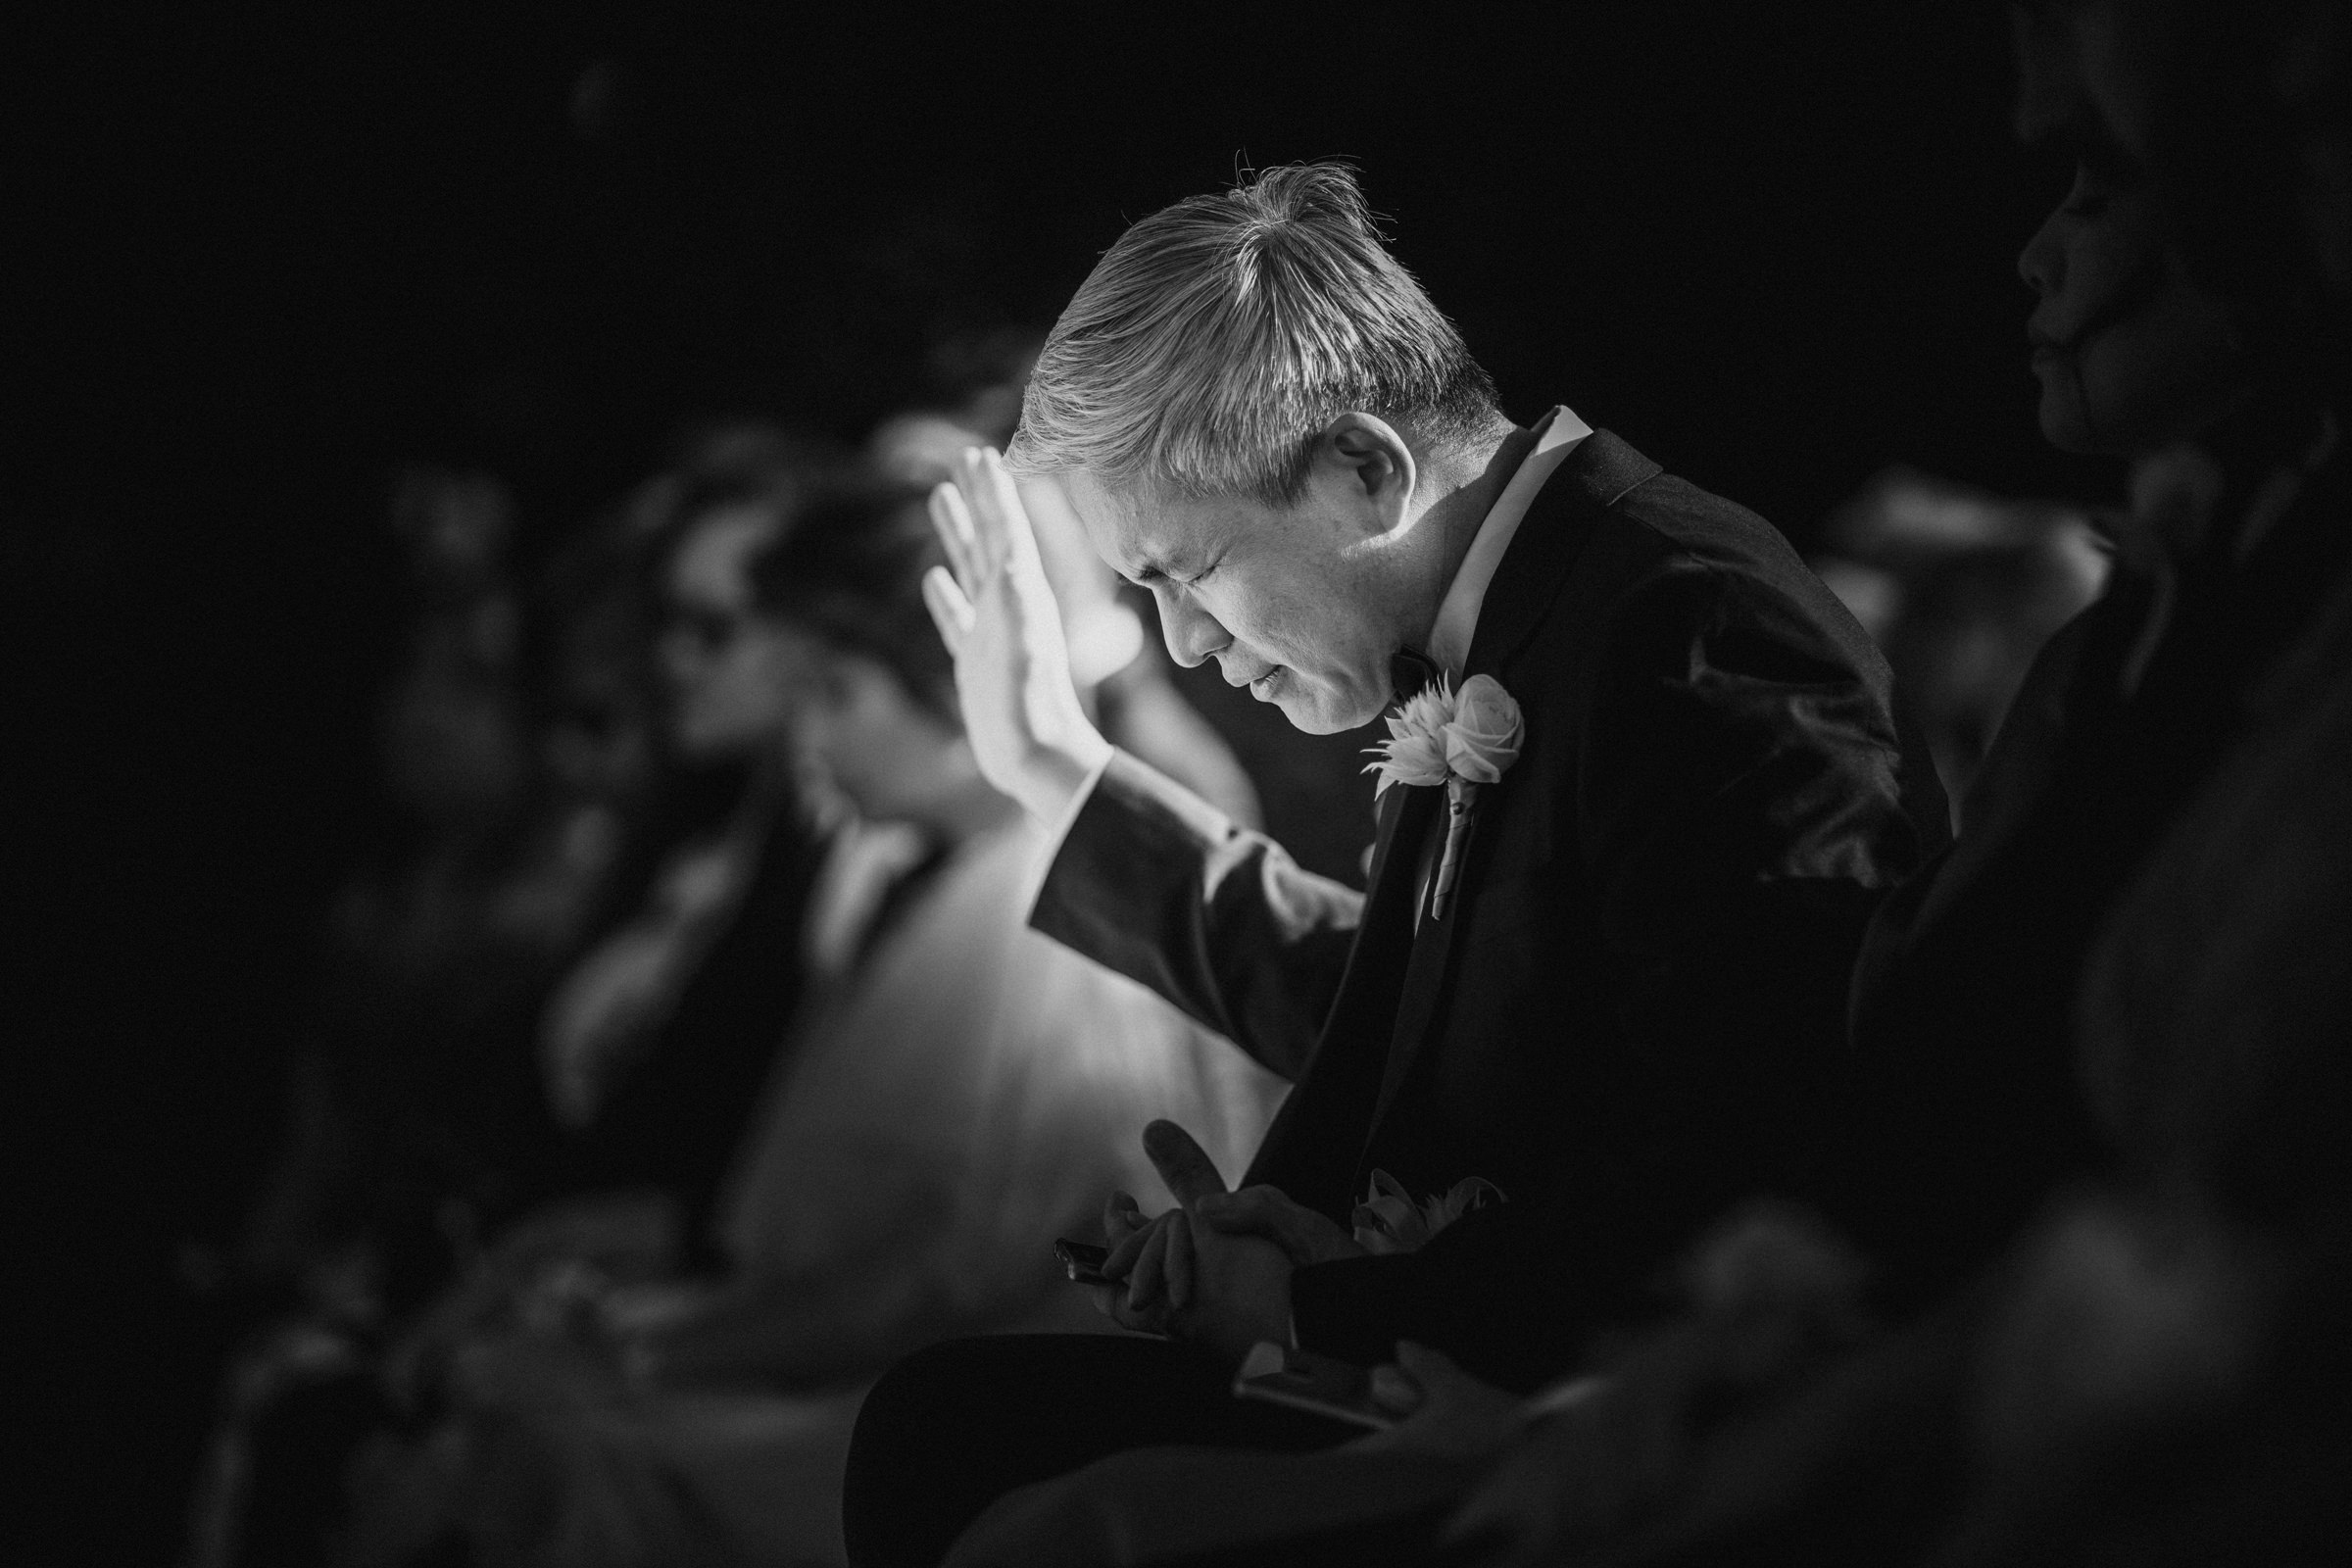 Dad praying at ceremony - Photo by Susan Stripling Photography